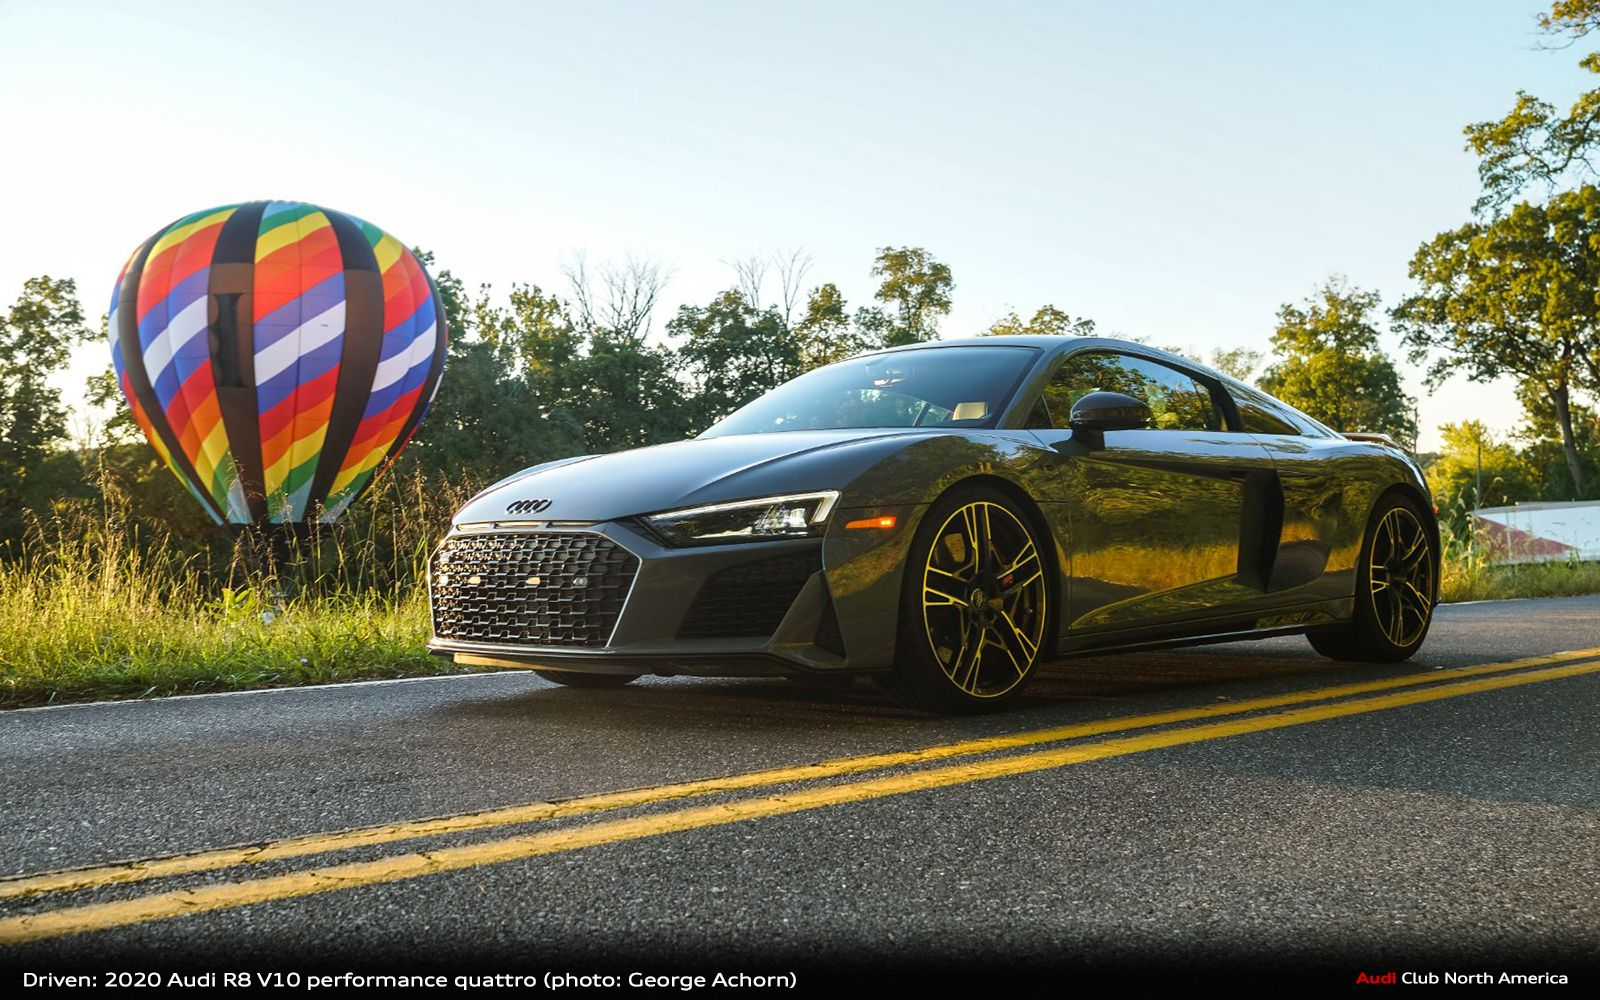 The Clark Kent of Supercars: 2020 Audi R8 V10 performance quattro